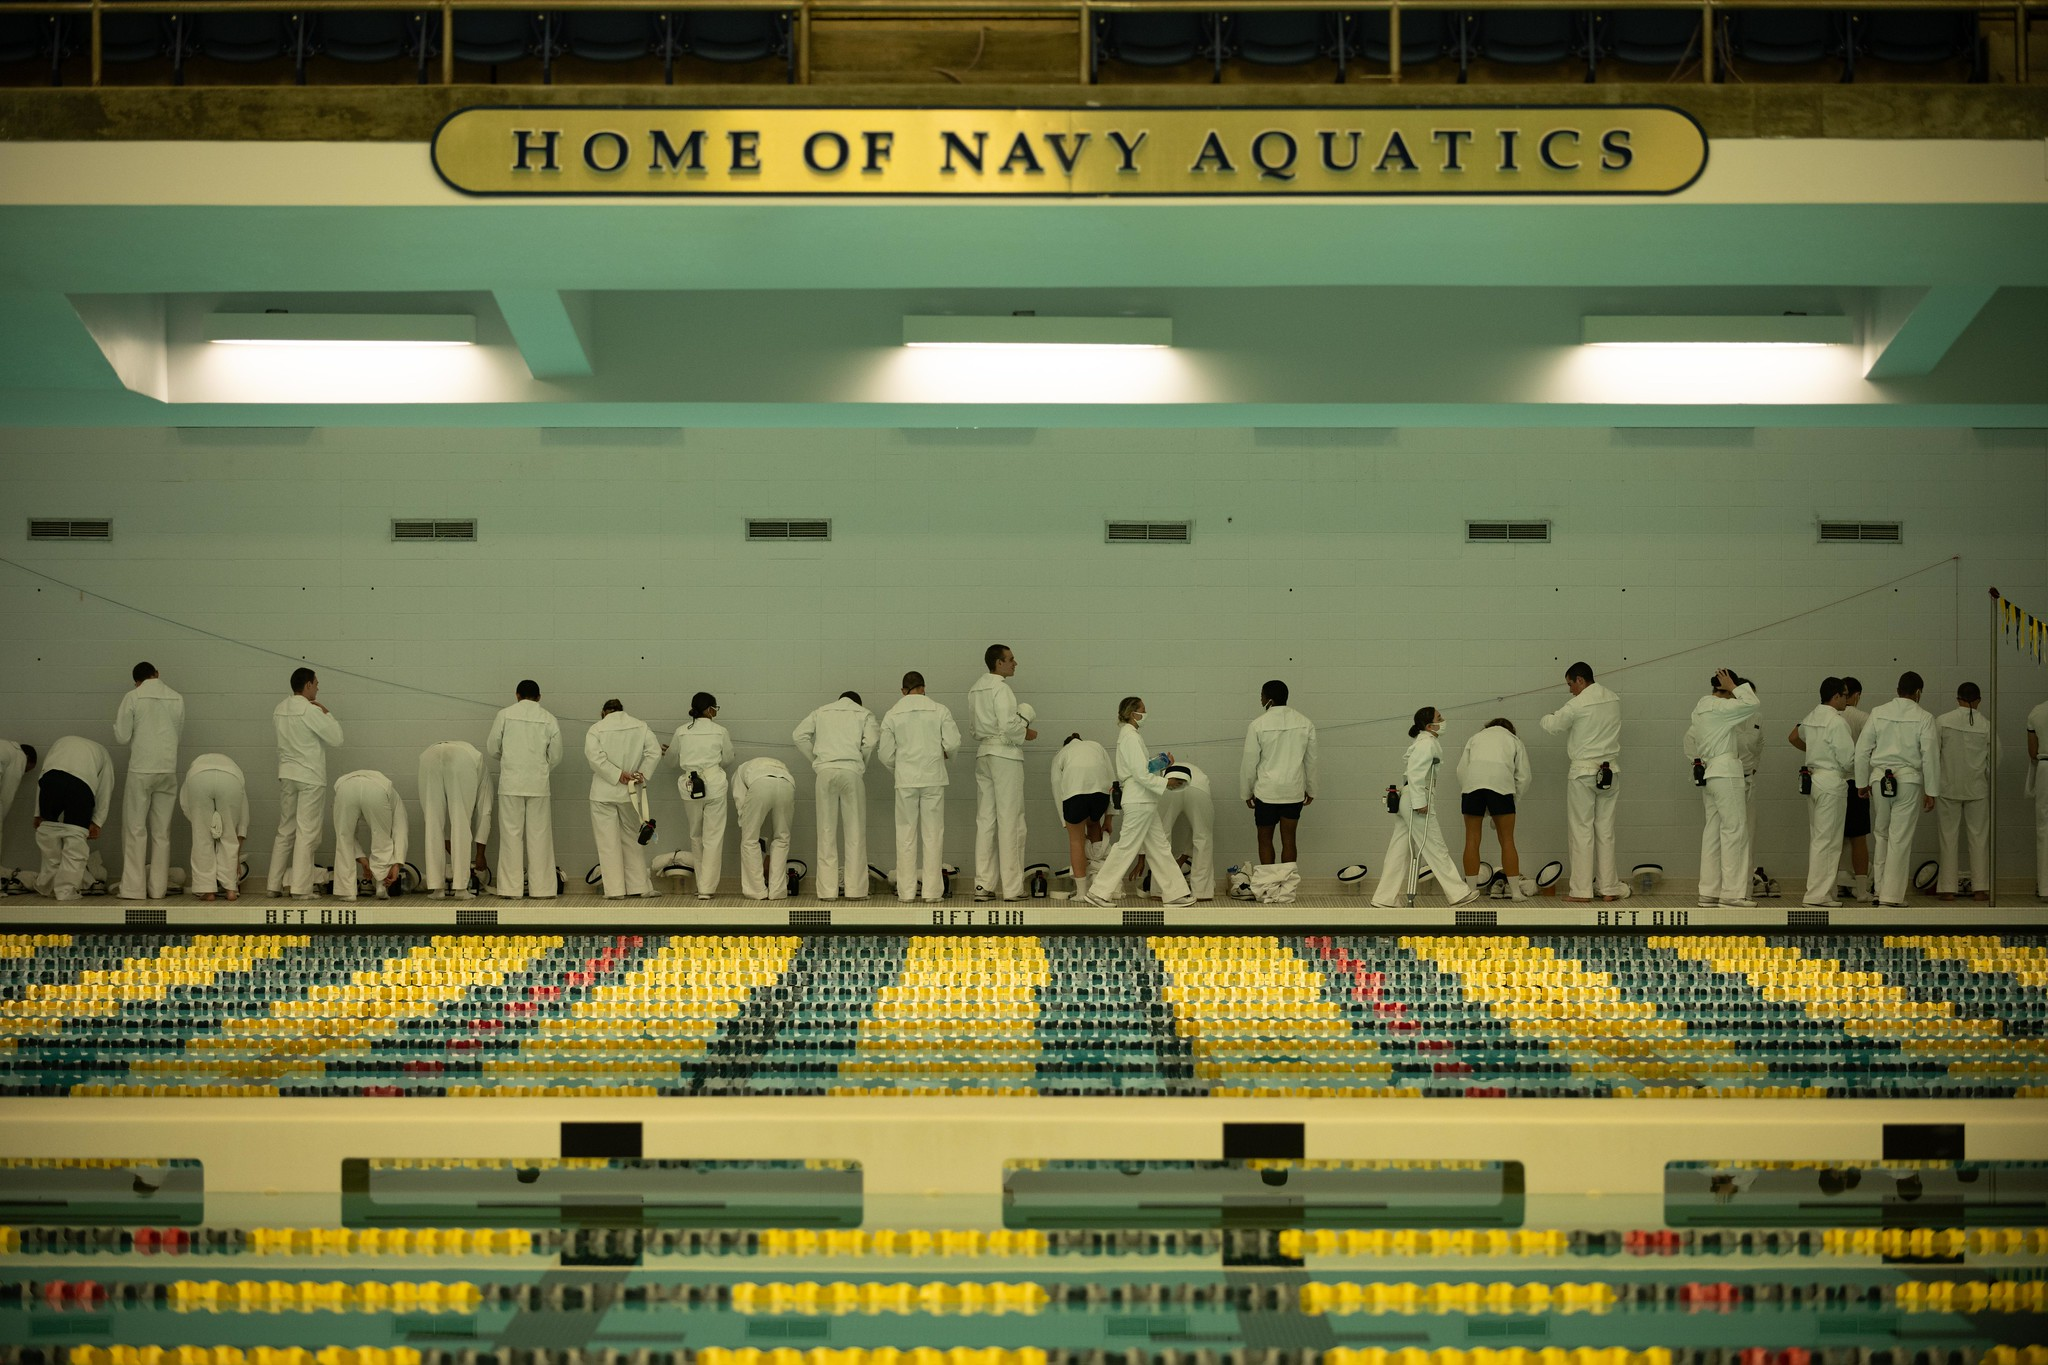 Midshipmen 4th Class, or plebes, from the United States Naval Academy Class of 2024 complete swim training on Aug. 5, 2020, during Plebe Summer, a demanding indoctrination period intended to transition the candidates from civilian to military life. (MC2 Nathan Burke/Navy)